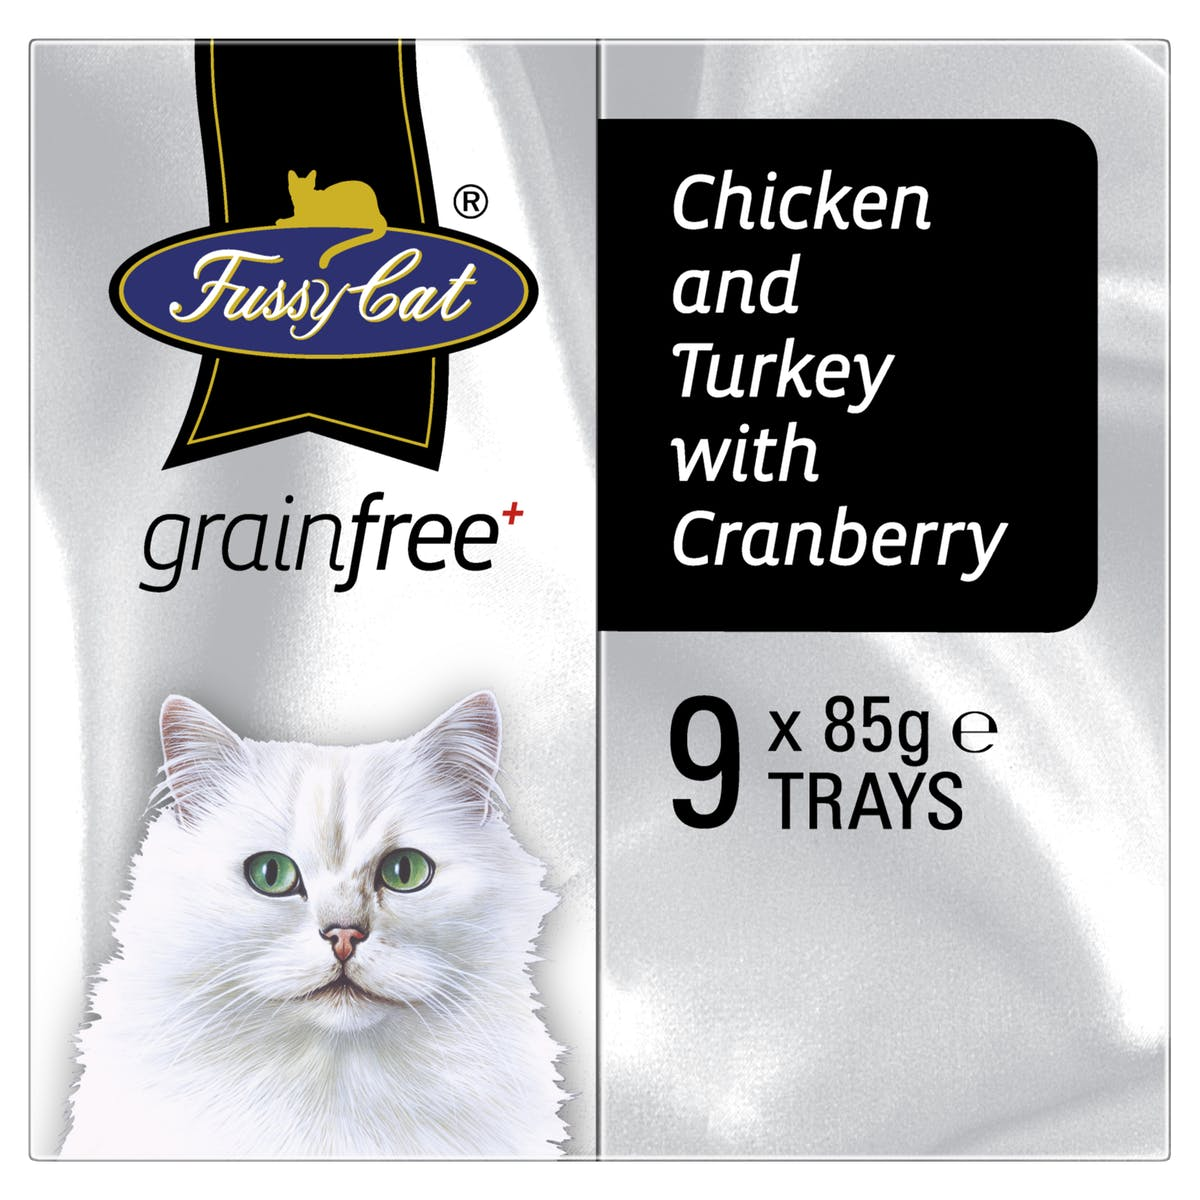 Fussy Cat | Chicken and Turkey with Cranberry 9 x 85g | Wet Cat Food | Left of pack